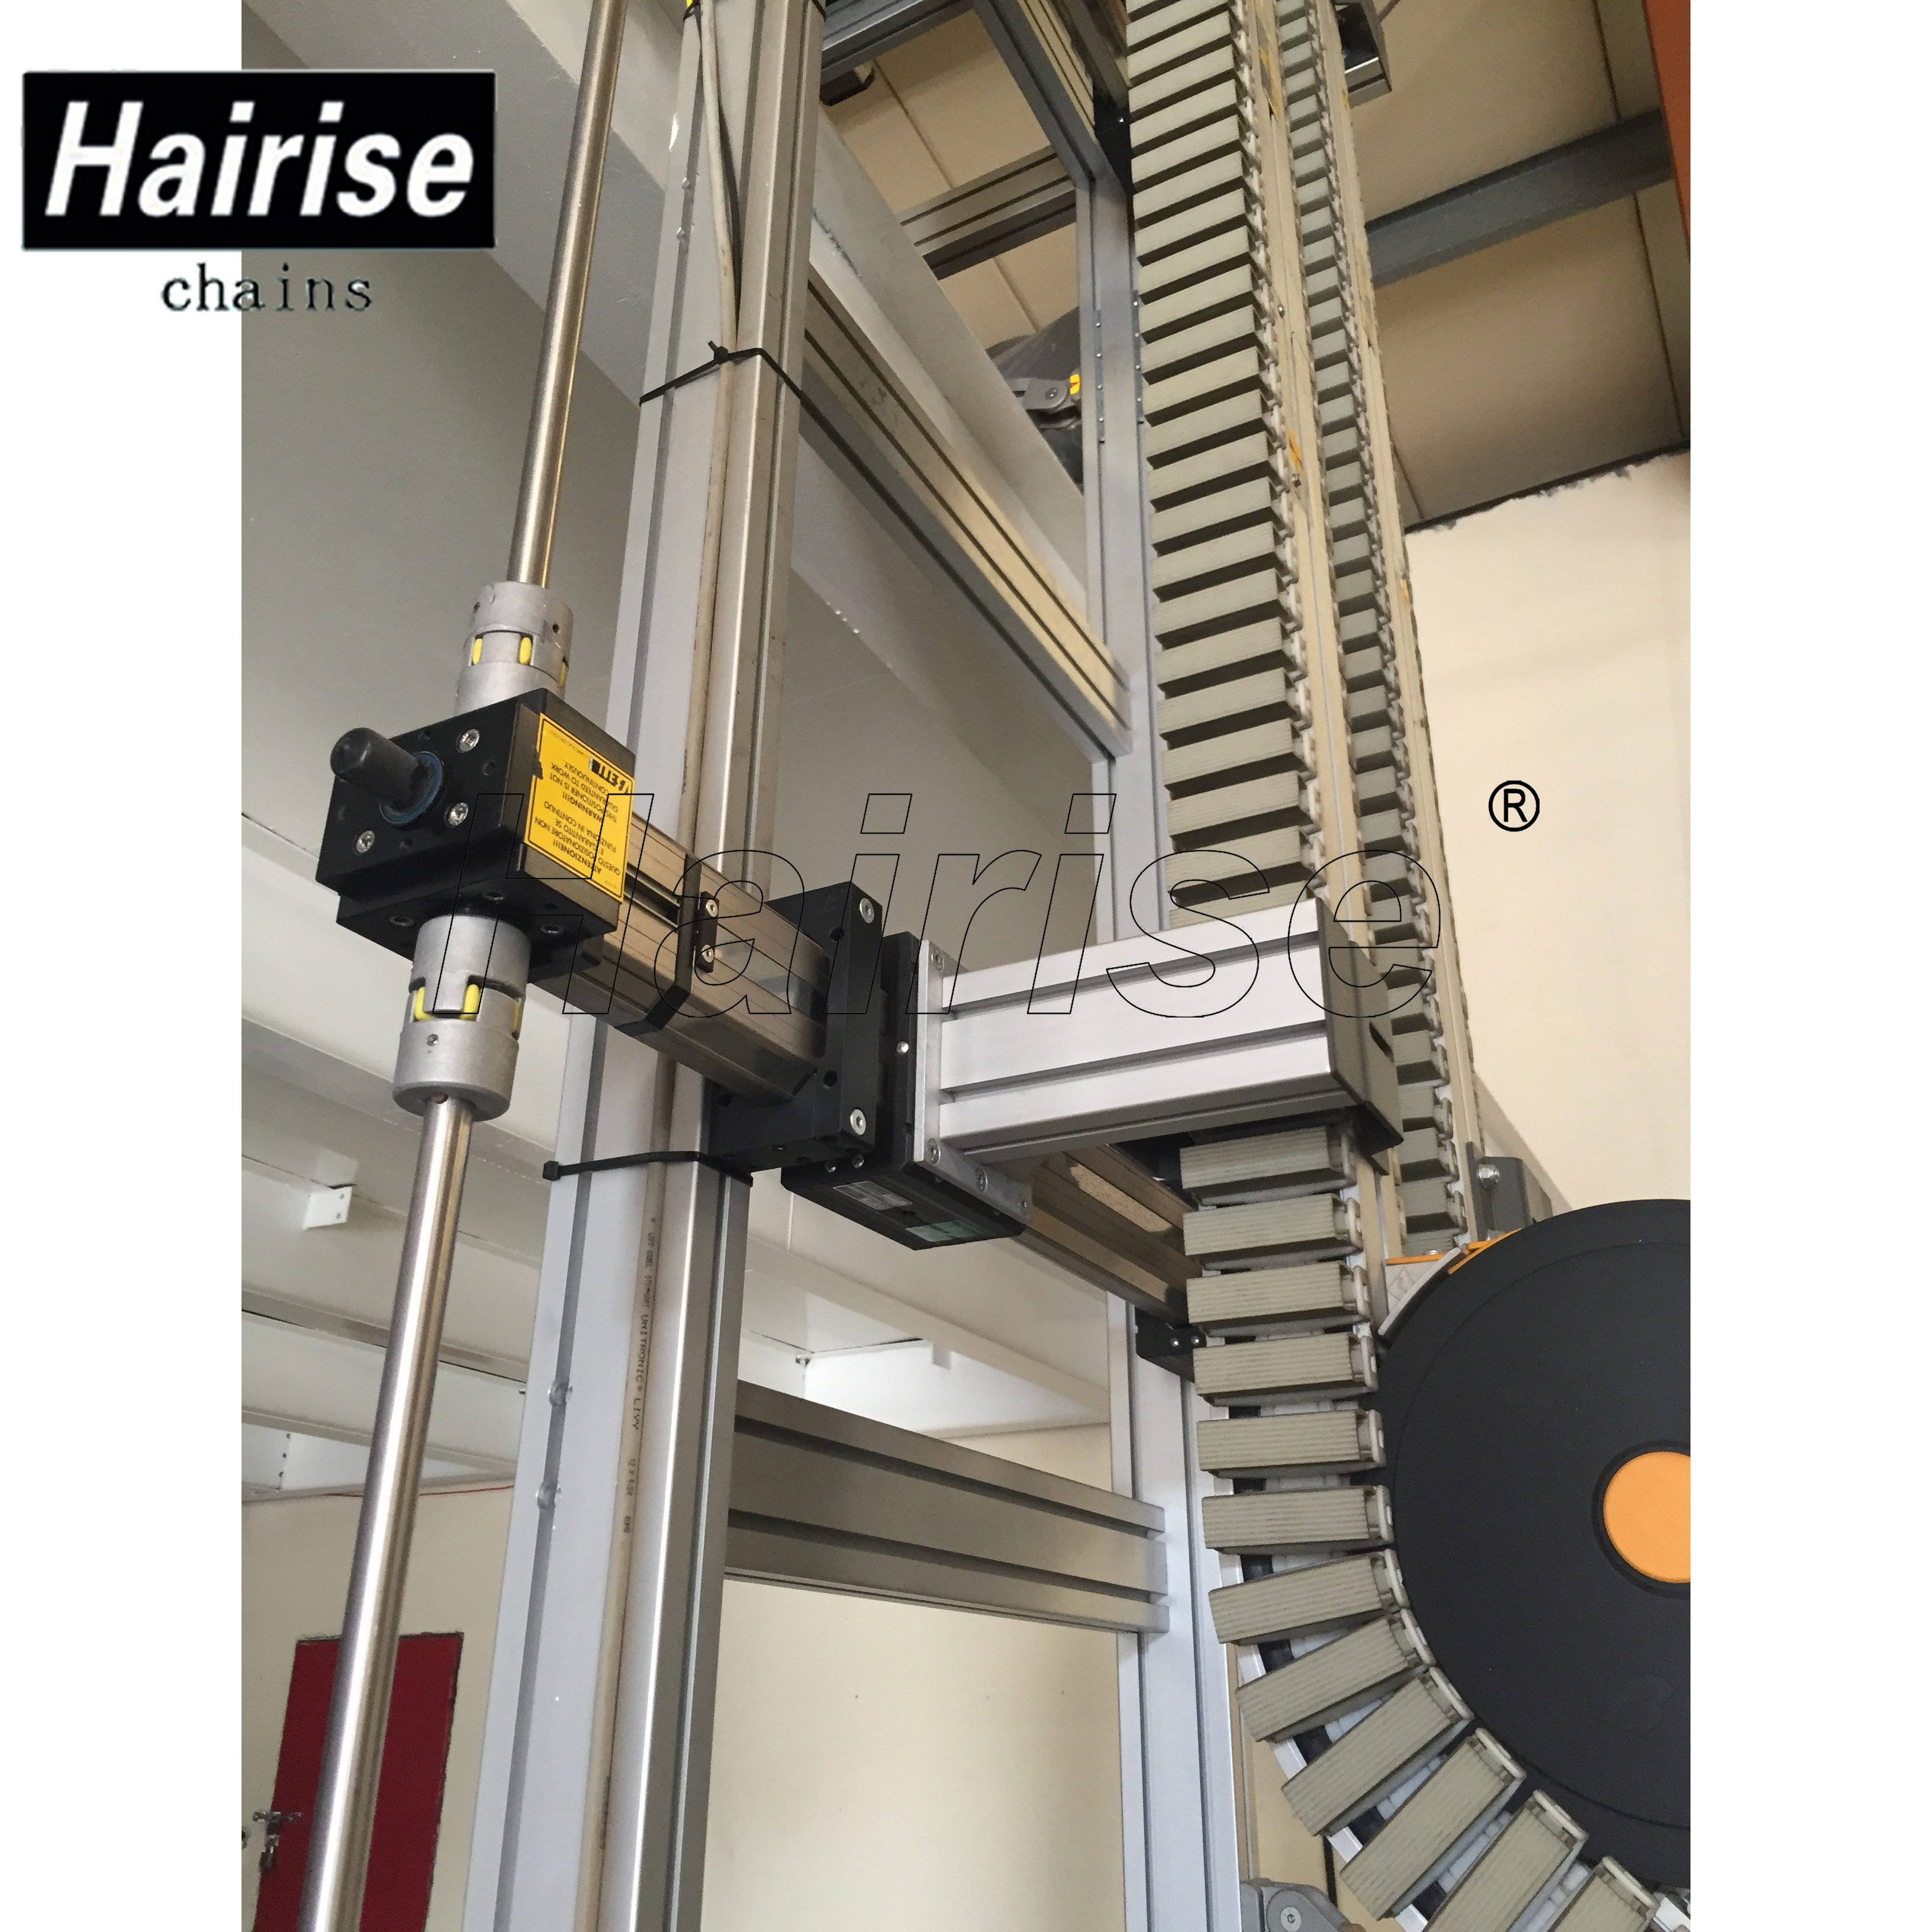 Hairise Inclined Conveyor for Lifting Bottles